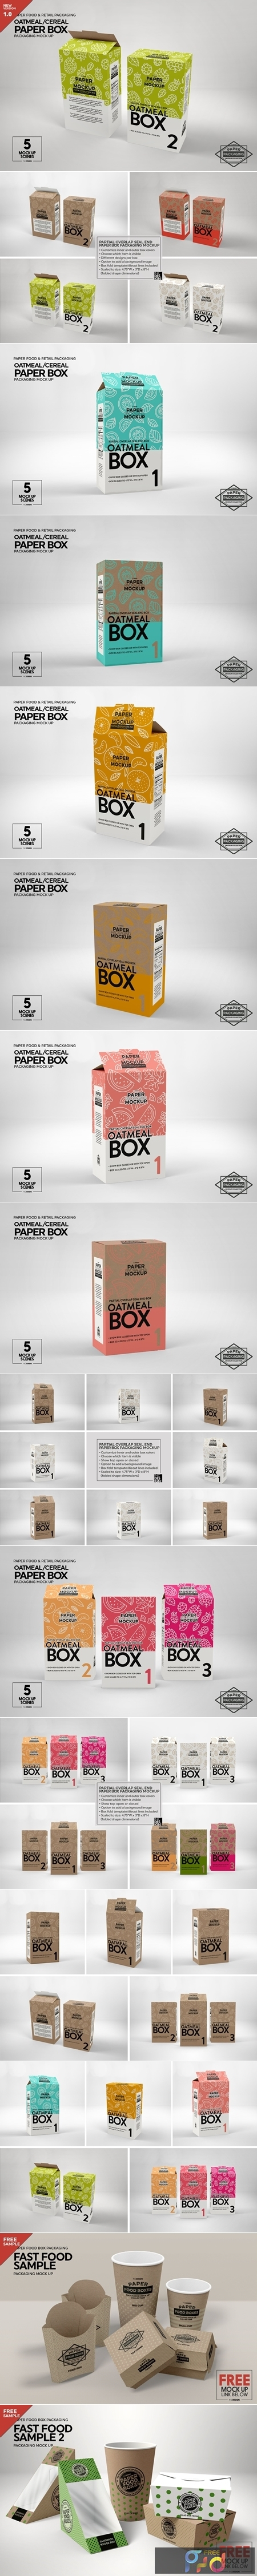 Paper Cereal Box Packaging Mockup 4347678 1